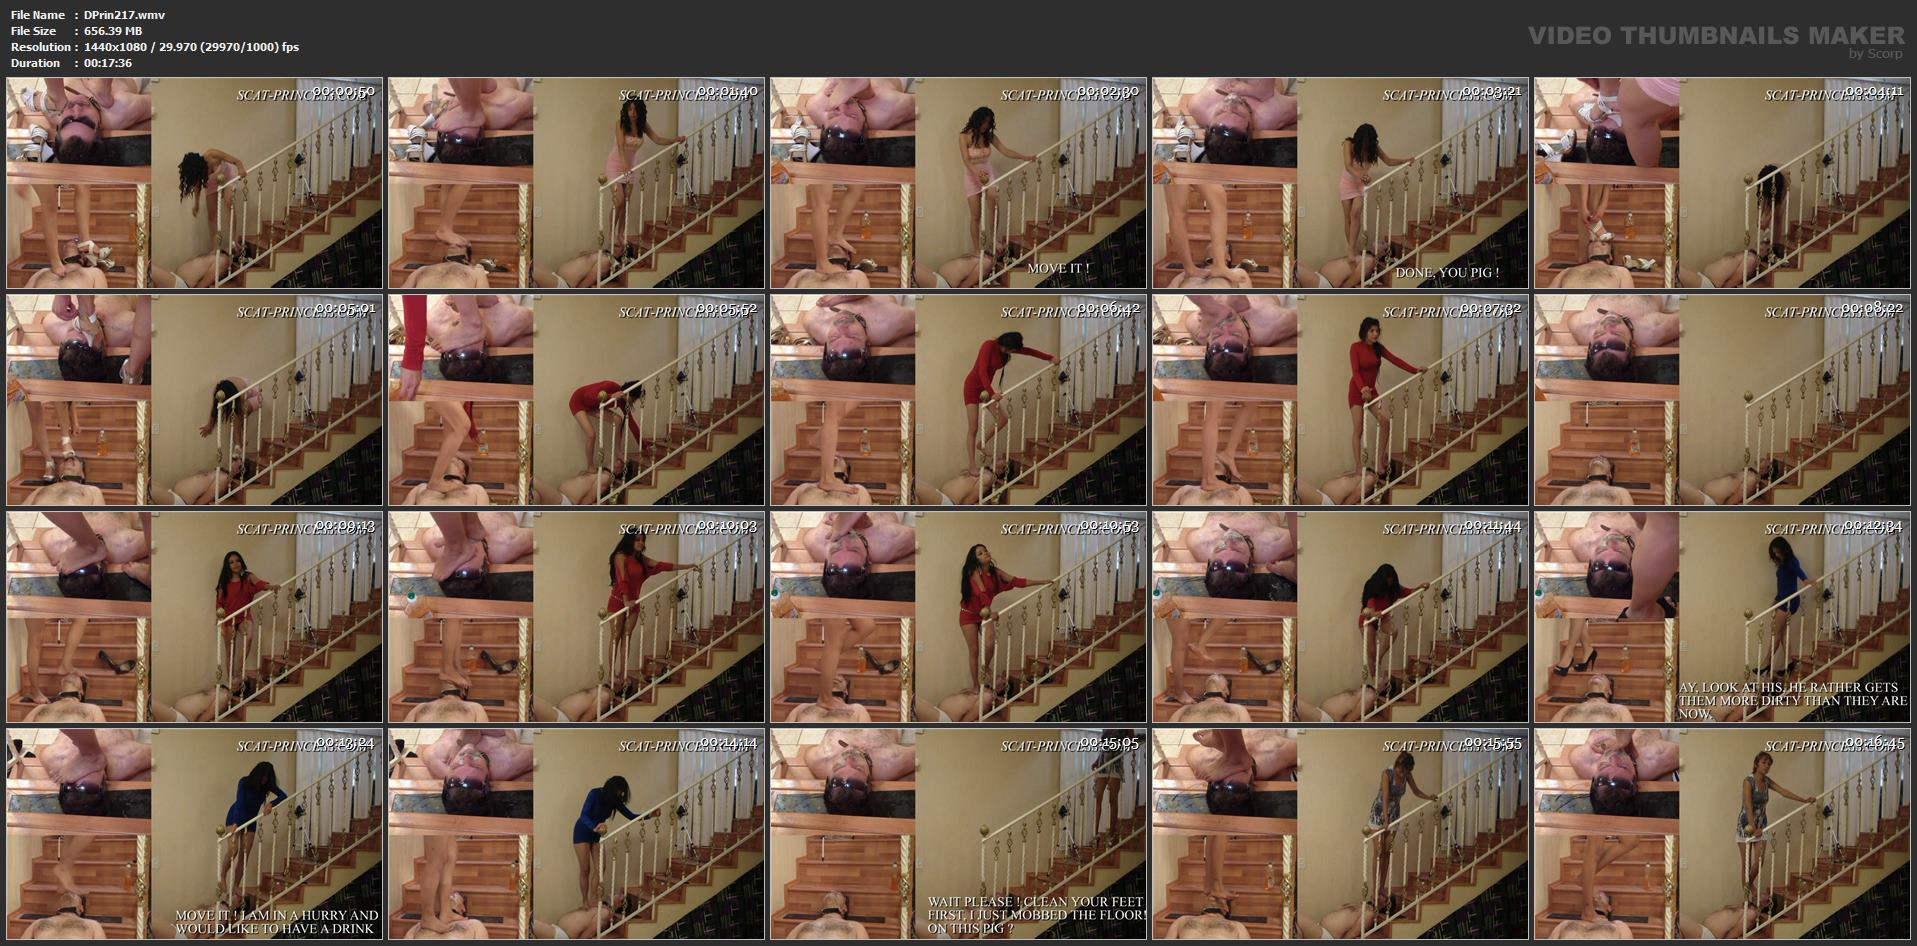 [DOM-PRINCESS] Toilet Man Abuse in the Kitchen Part 1 [FULL HD][1080p][WMV]